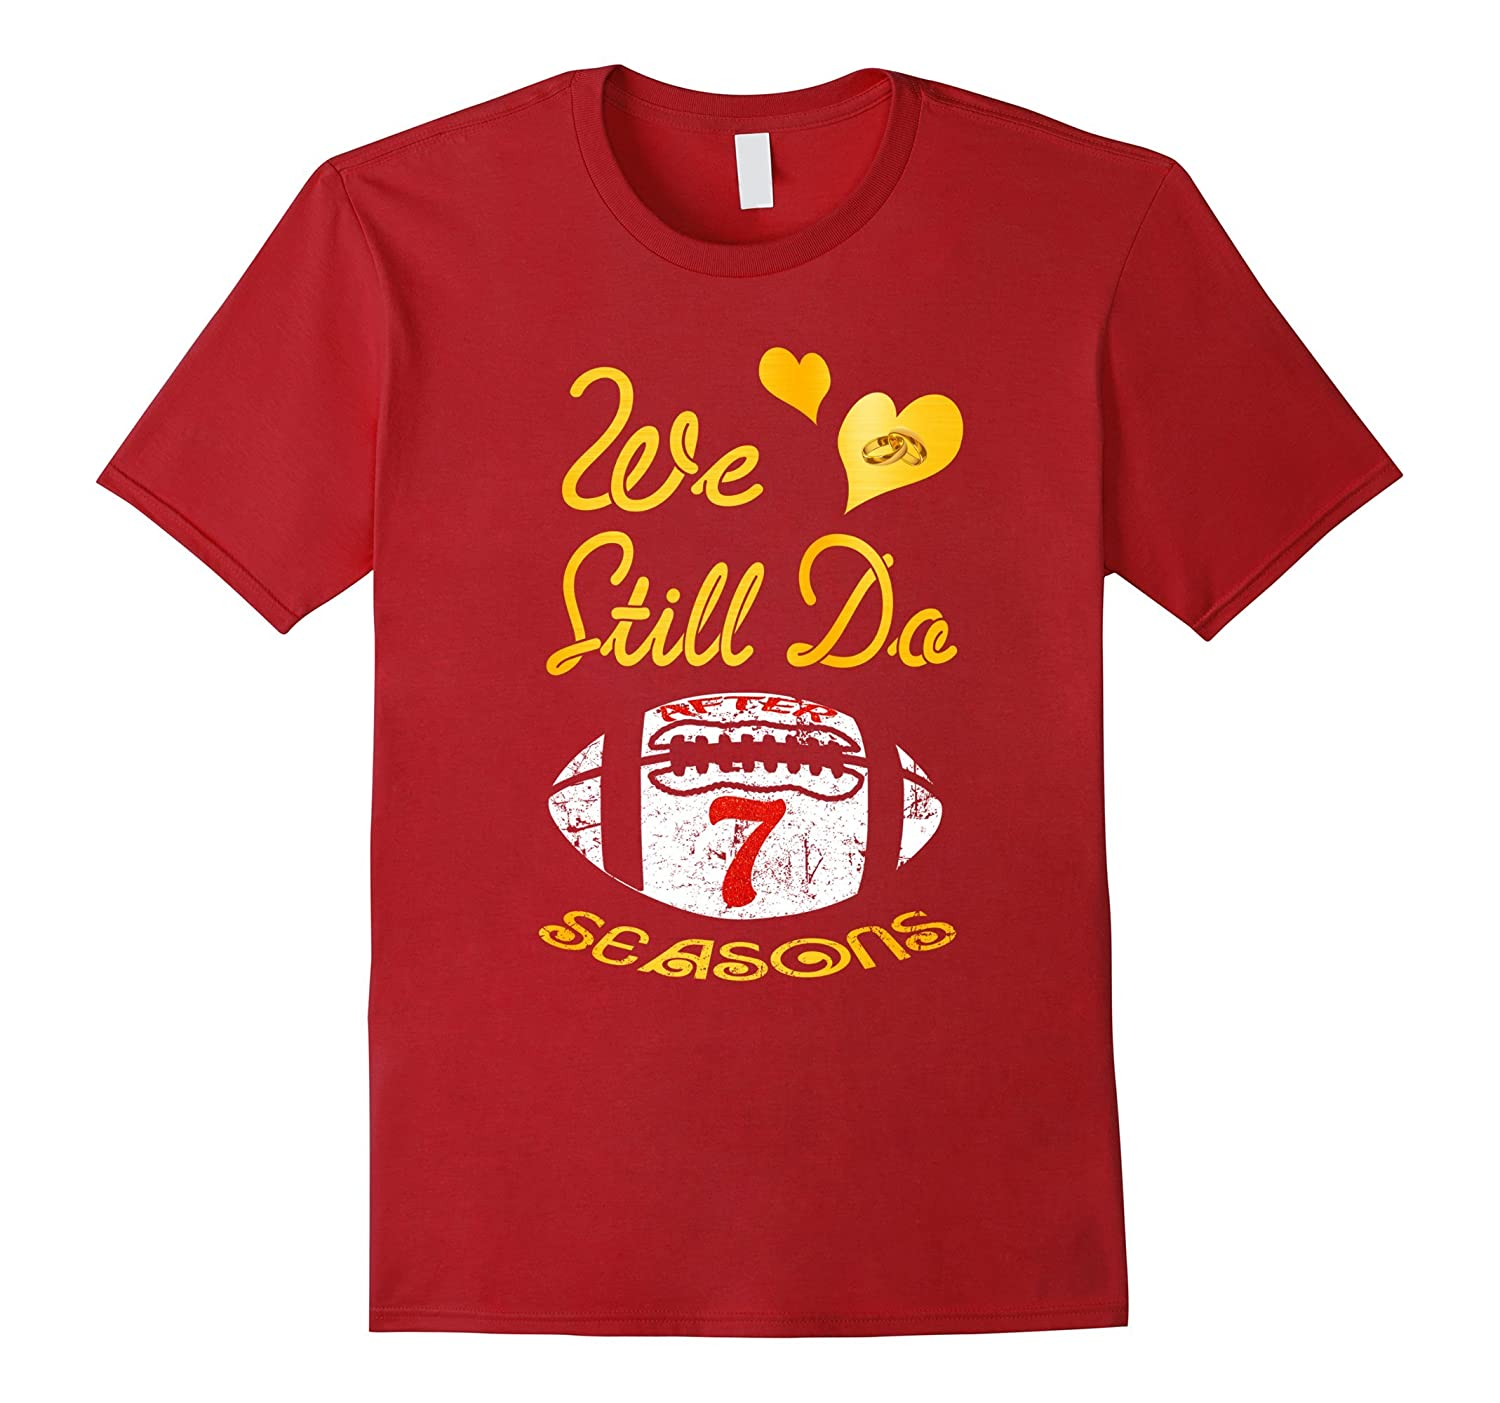 7th Wedding Anniversary.7th Wedding Anniversary Tshirt We Still Do Football Tshirt Gm